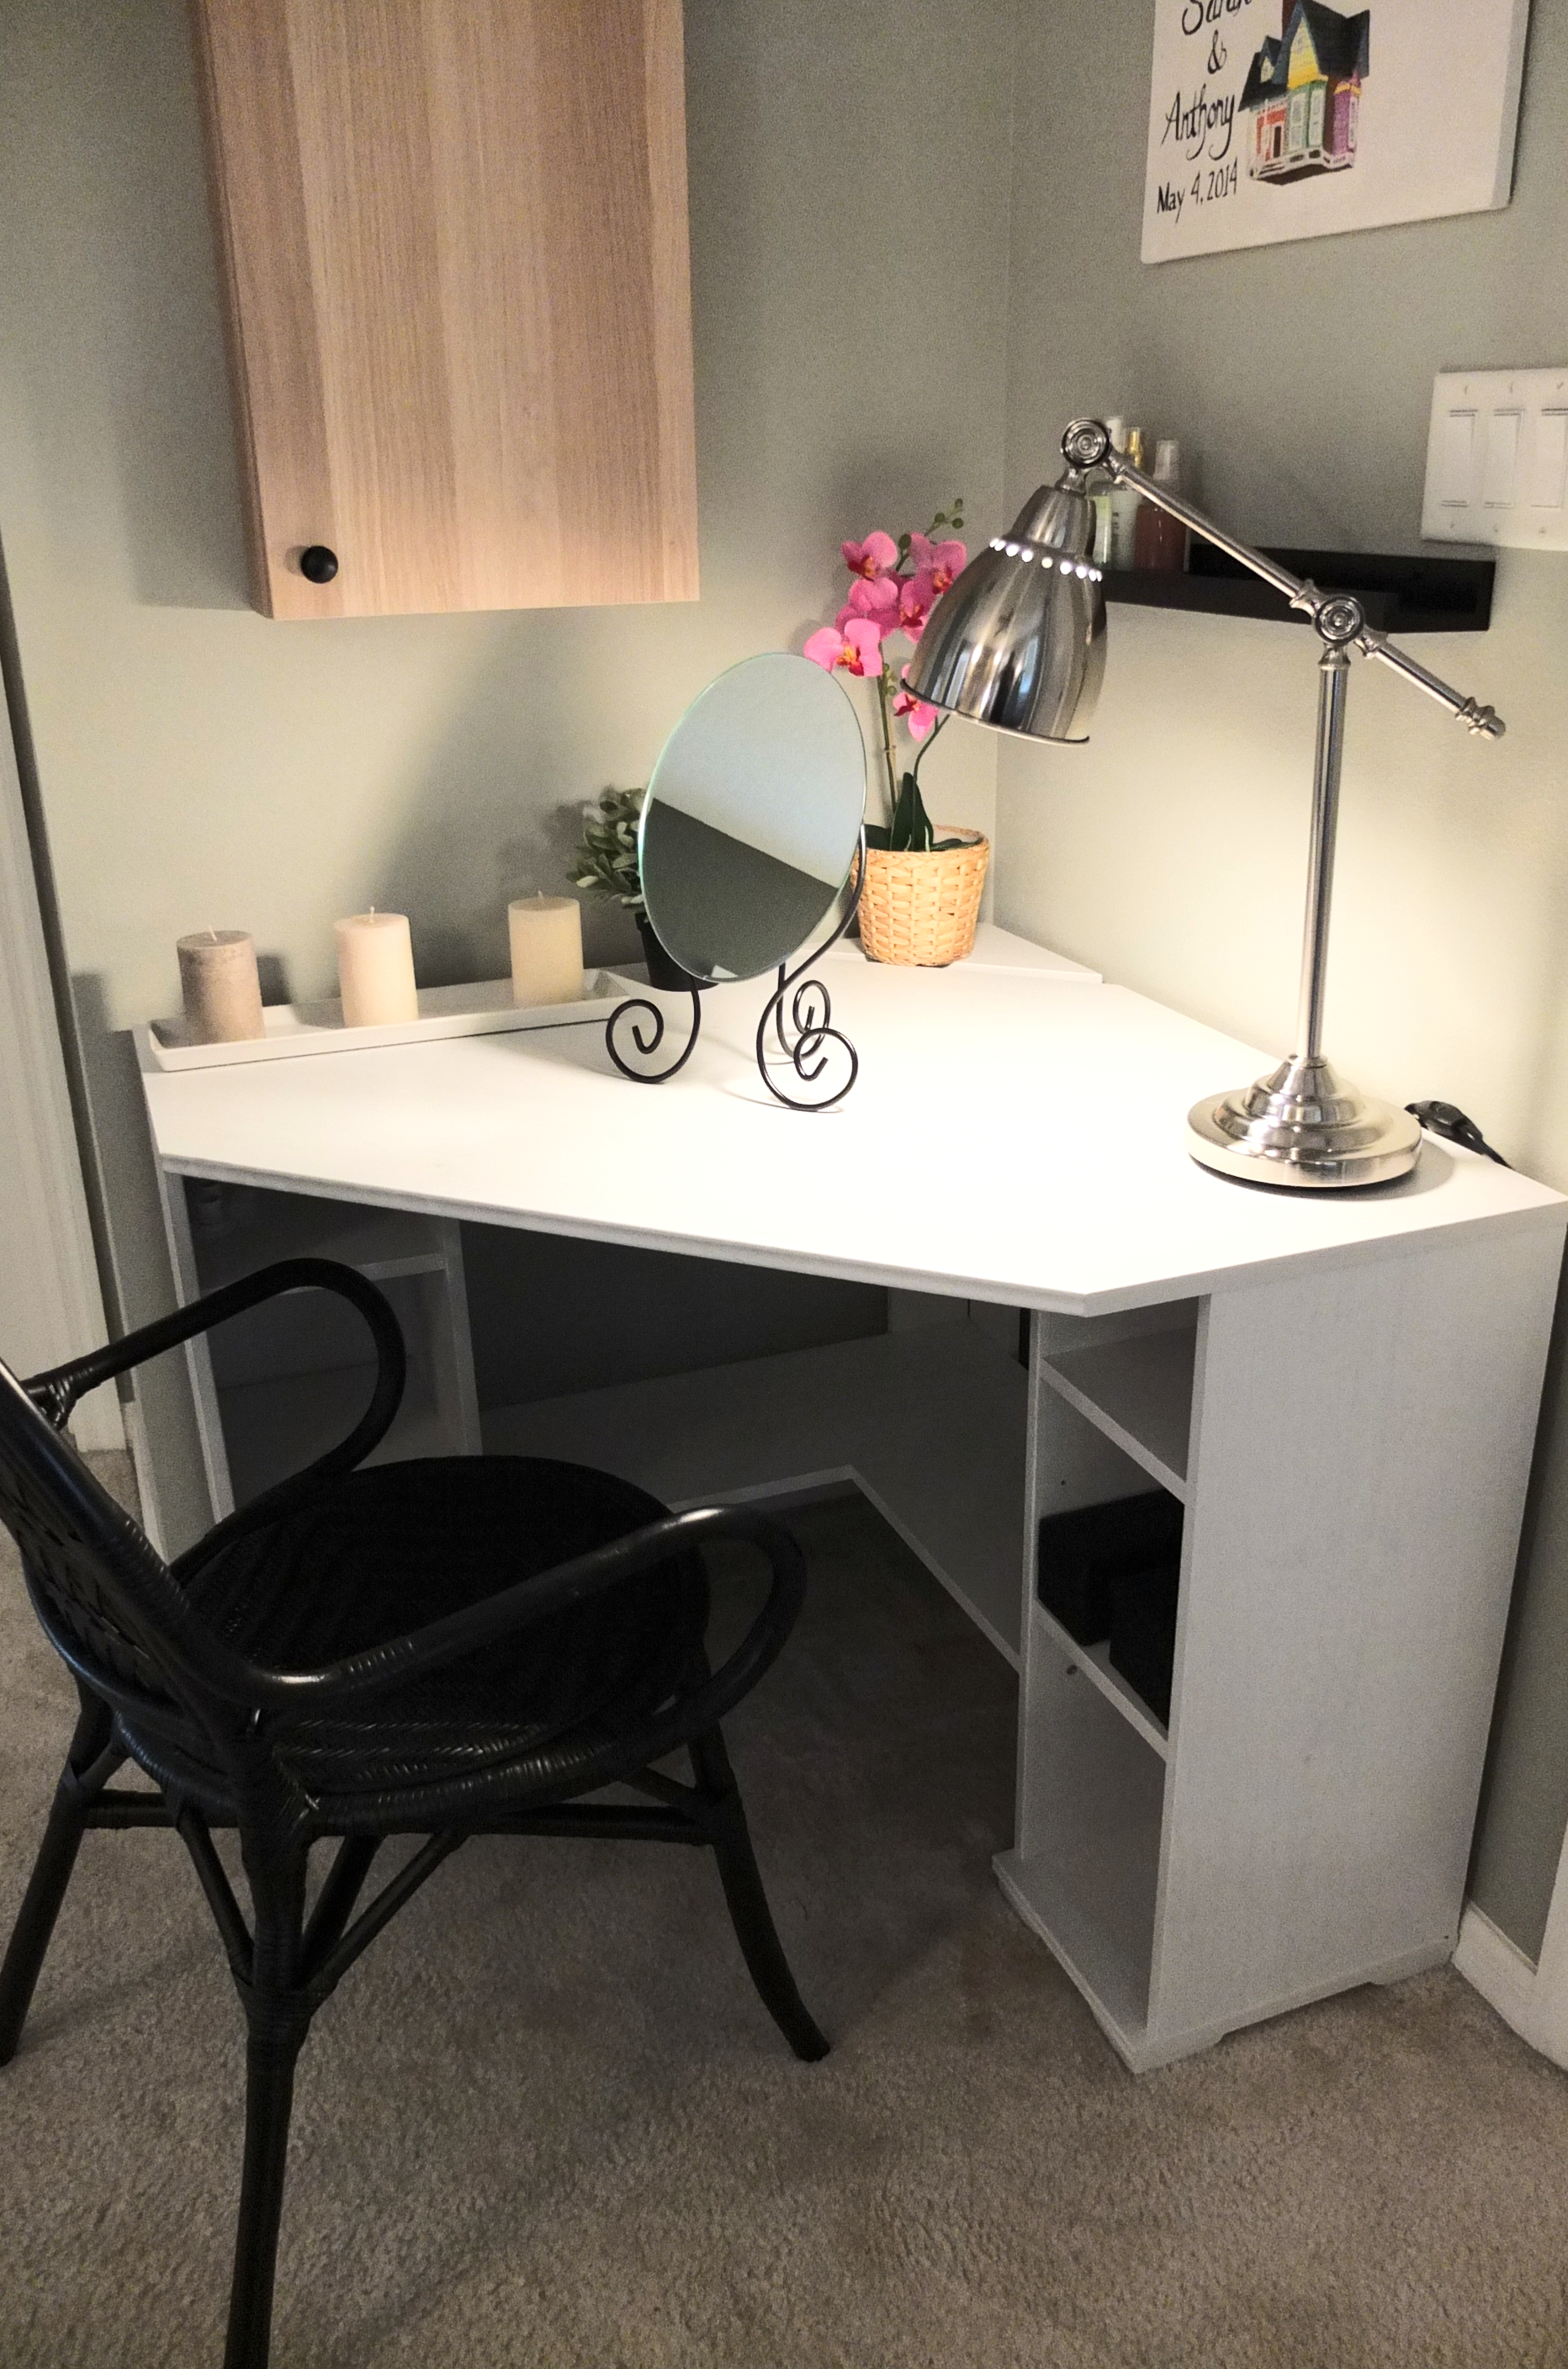 Ikea Us Furniture And Home Furnishings Diy Corner Desk Bedroom Desk Small Corner Desk